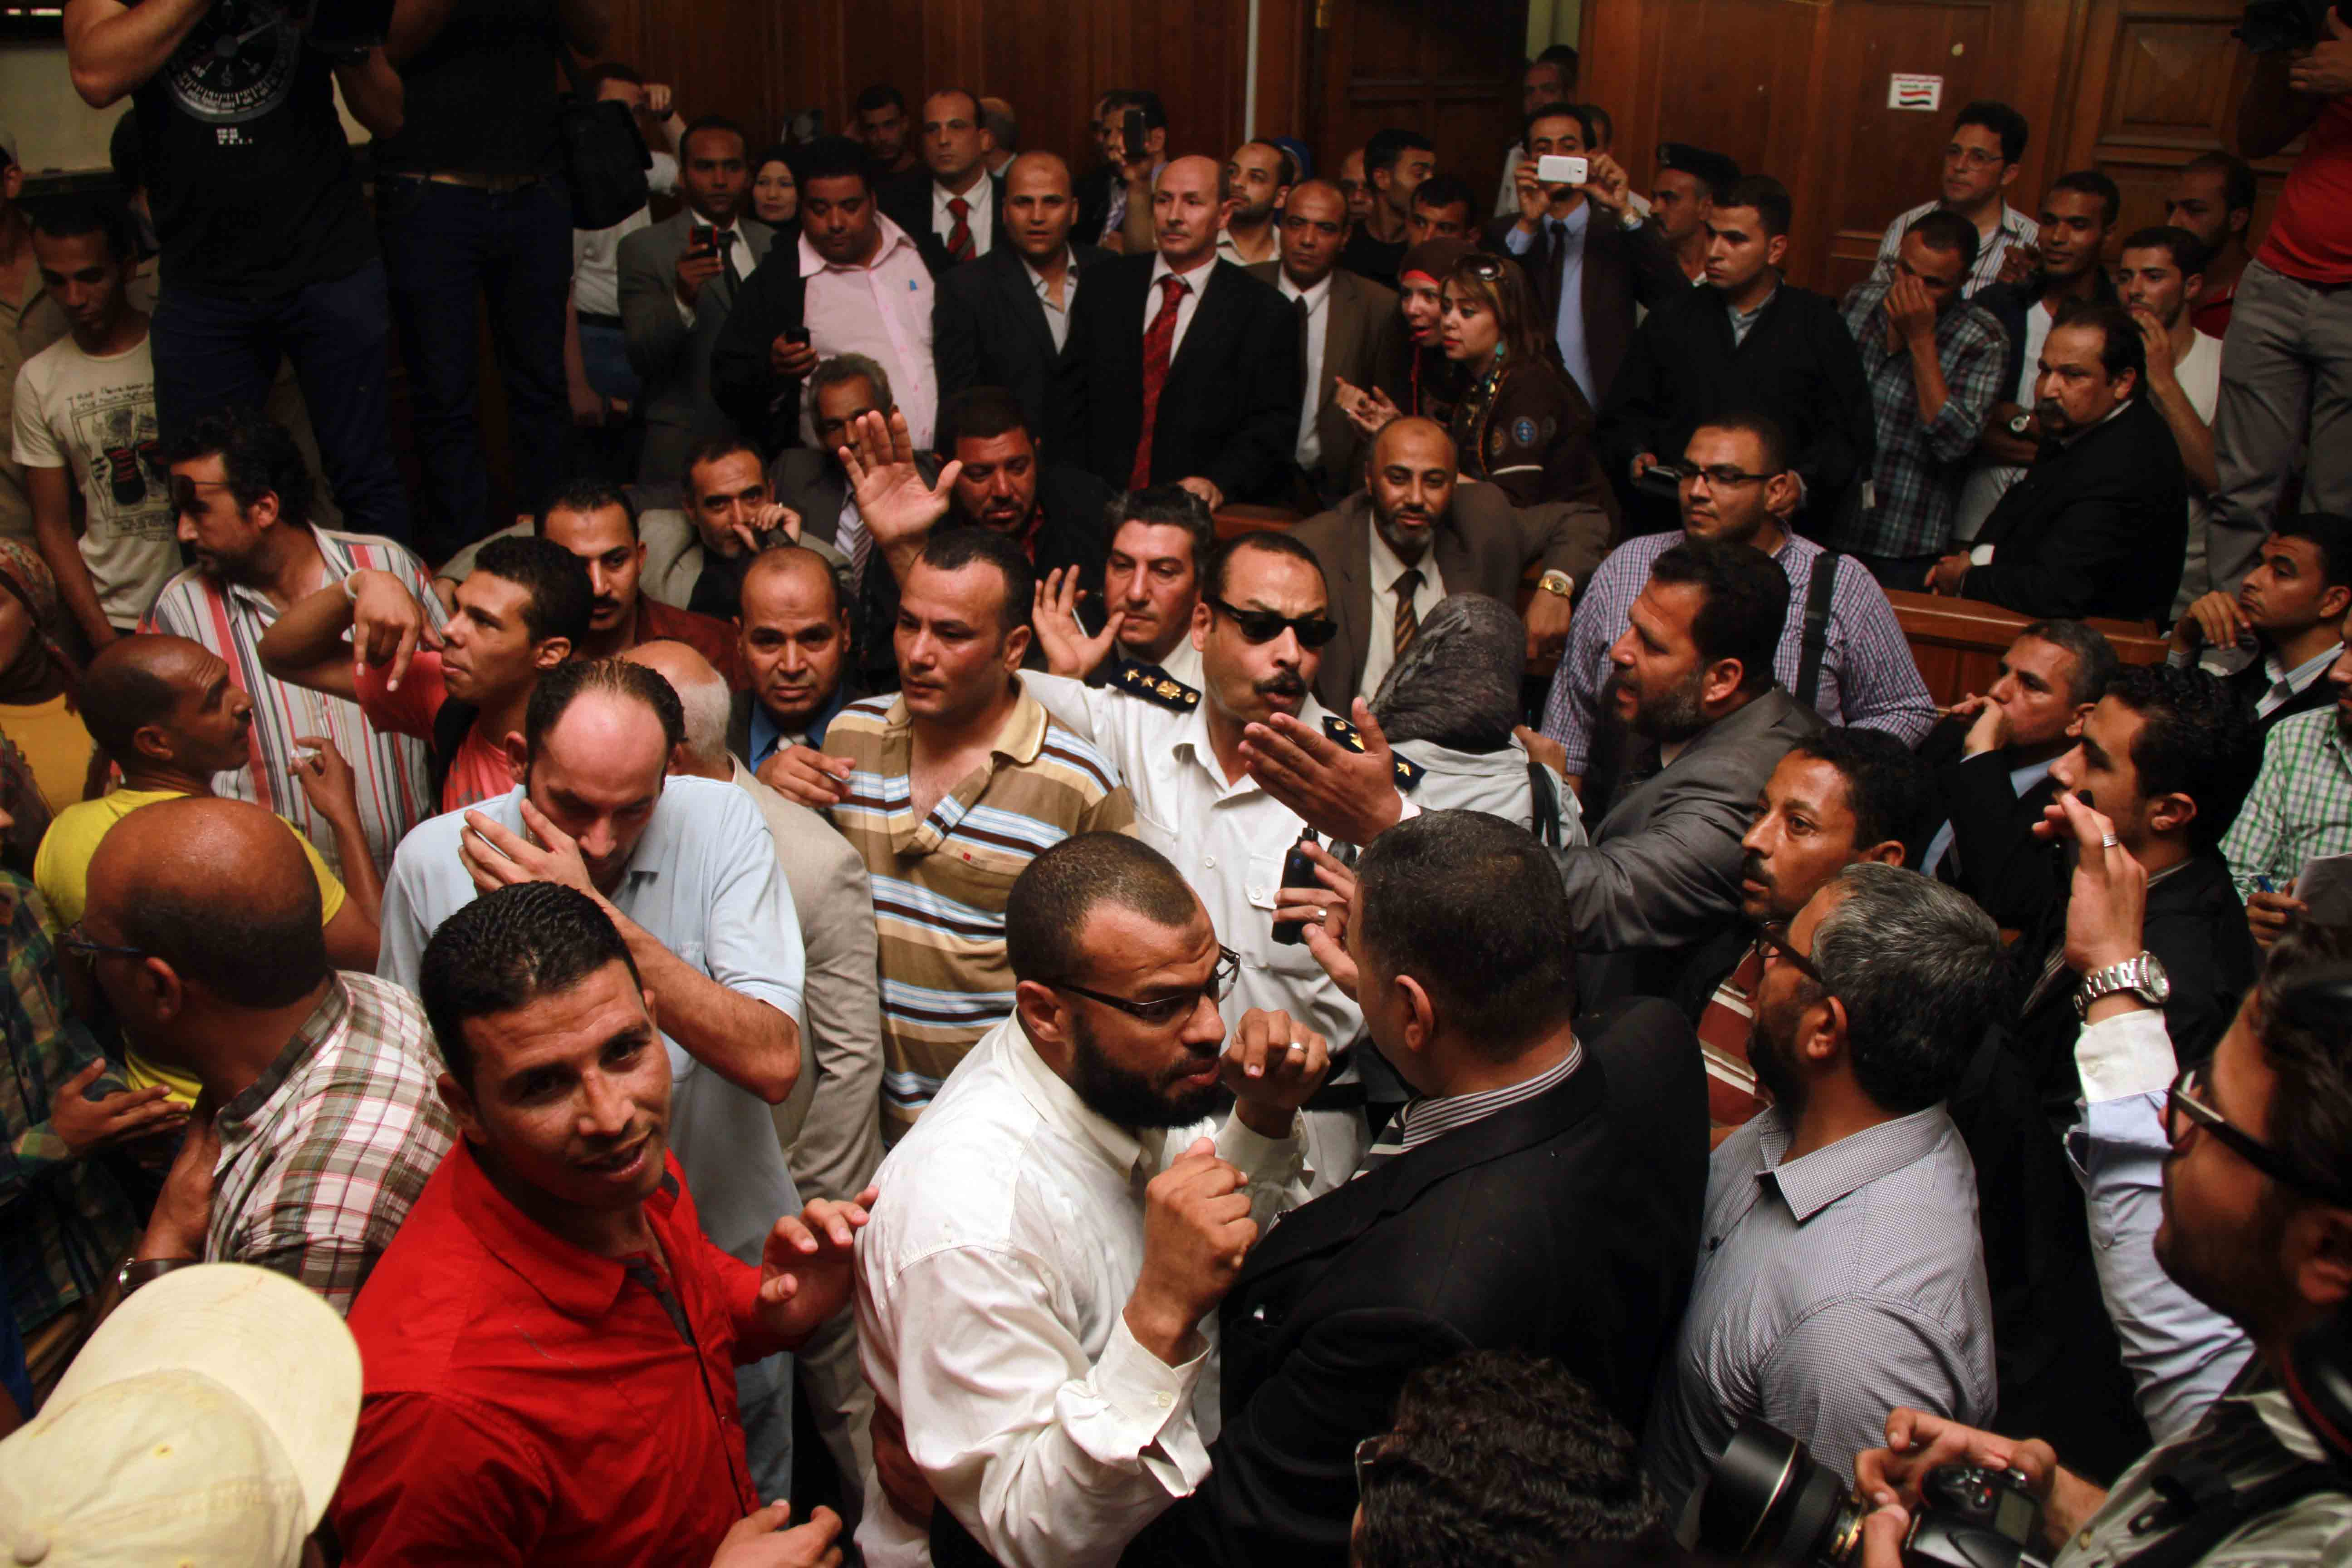 Attendants of the trial held over the escape of several Muslim Brotherhood leaders from Wadi El Natrun prison in 2011 gather in court (Photo by Mohamed Omar)